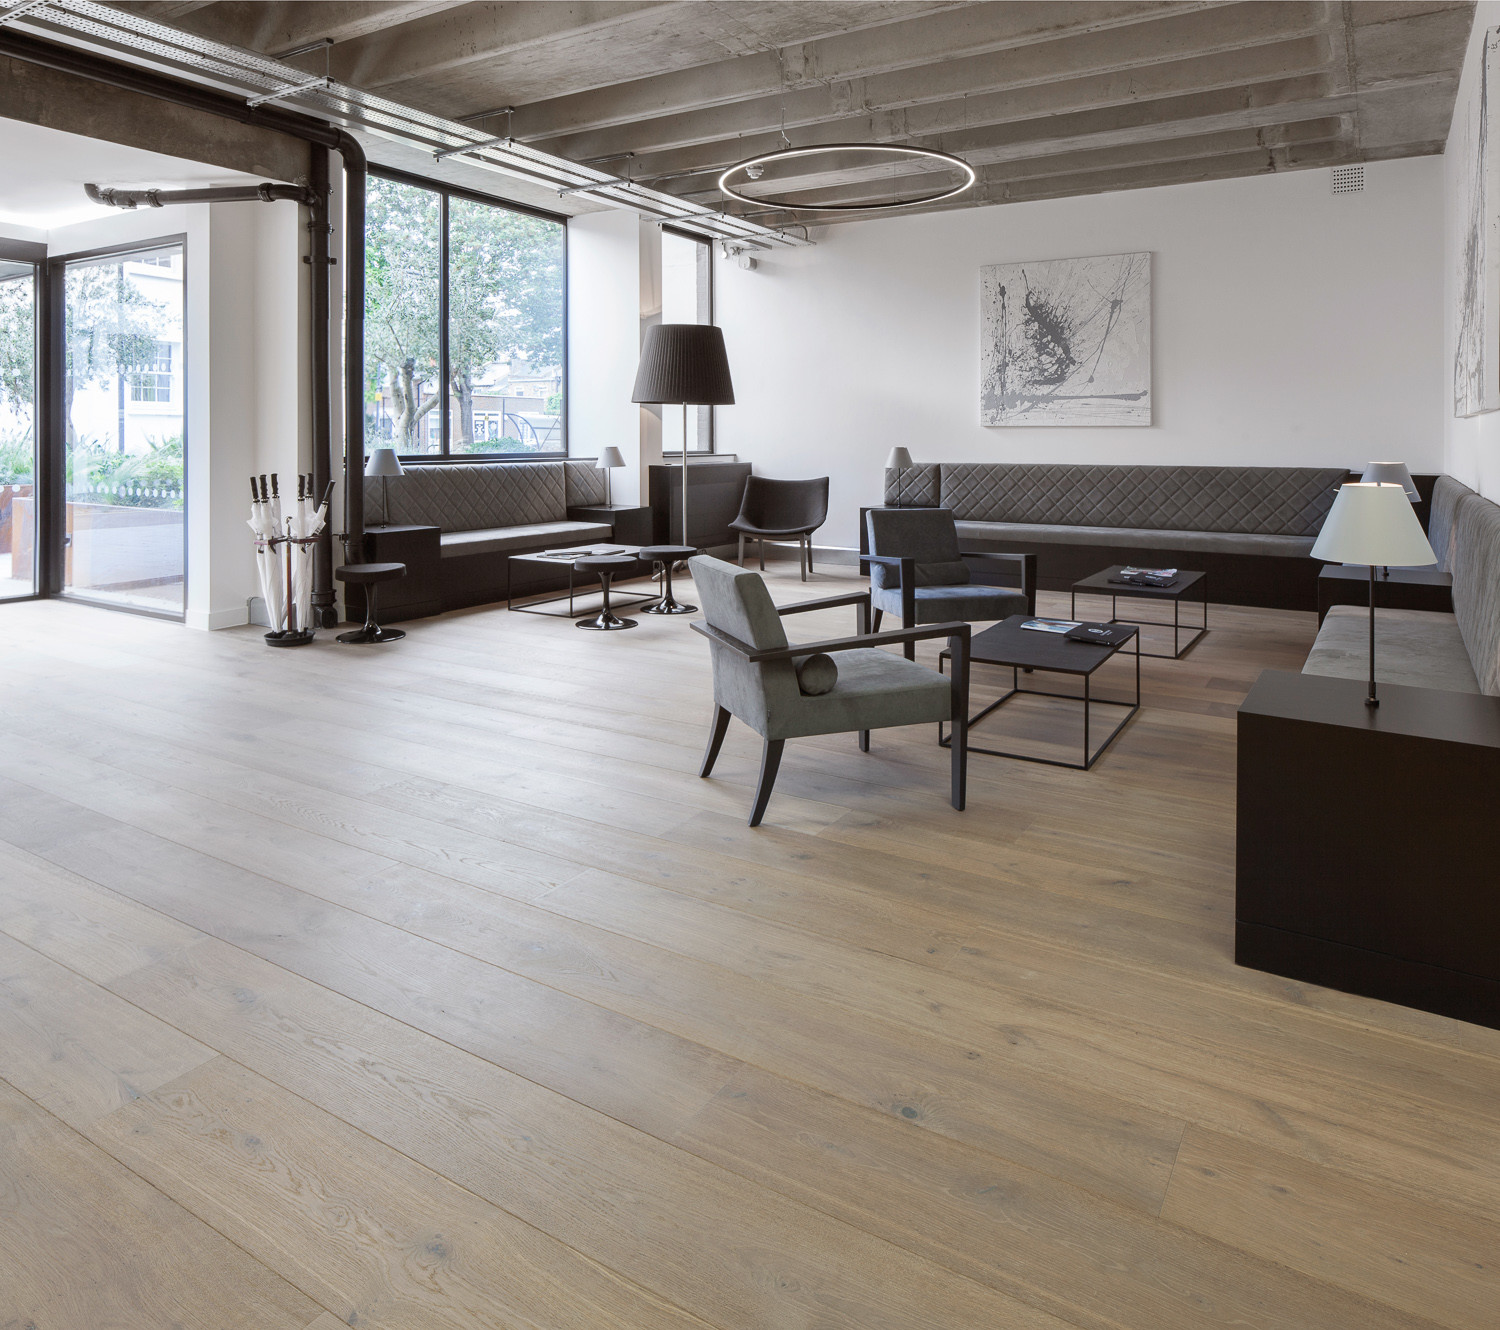 hardwood floor with contrasting border of the new reclaimed flooring company with regard to the report indicated that 82 of workers who were employed in places with eight or more wood surfaces had higher personal productivity mood concentration